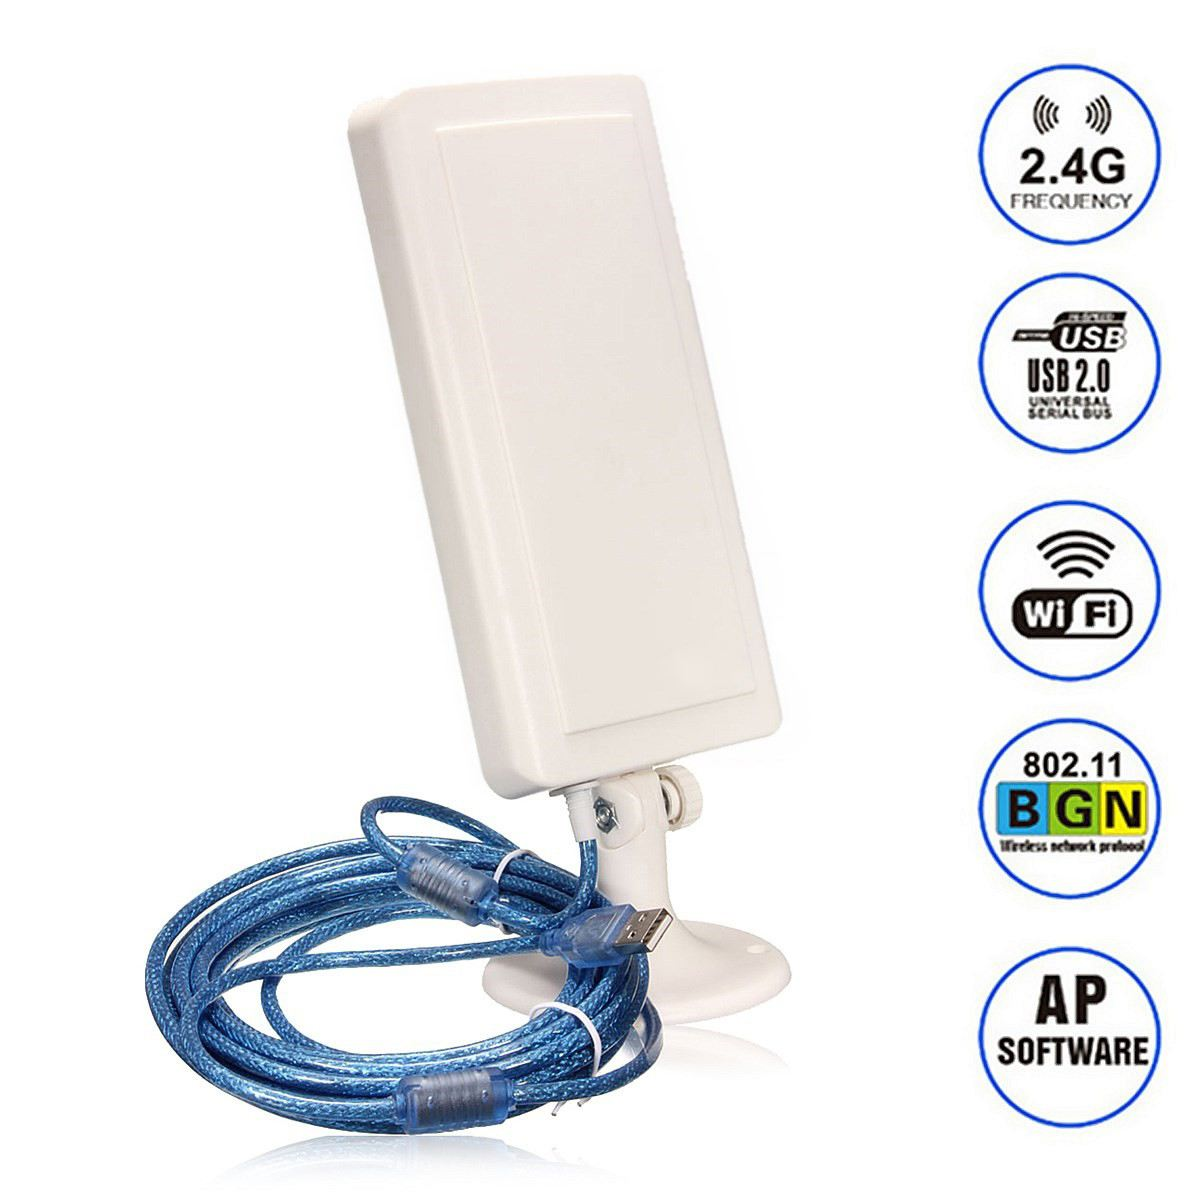 lowest price TIANJIE CPE903 Home 3G 4G 2 External Antennas WIFI ROUTER  WIFI CPE wireless router with 1 x RJ45 Ports and 1 sim card slot